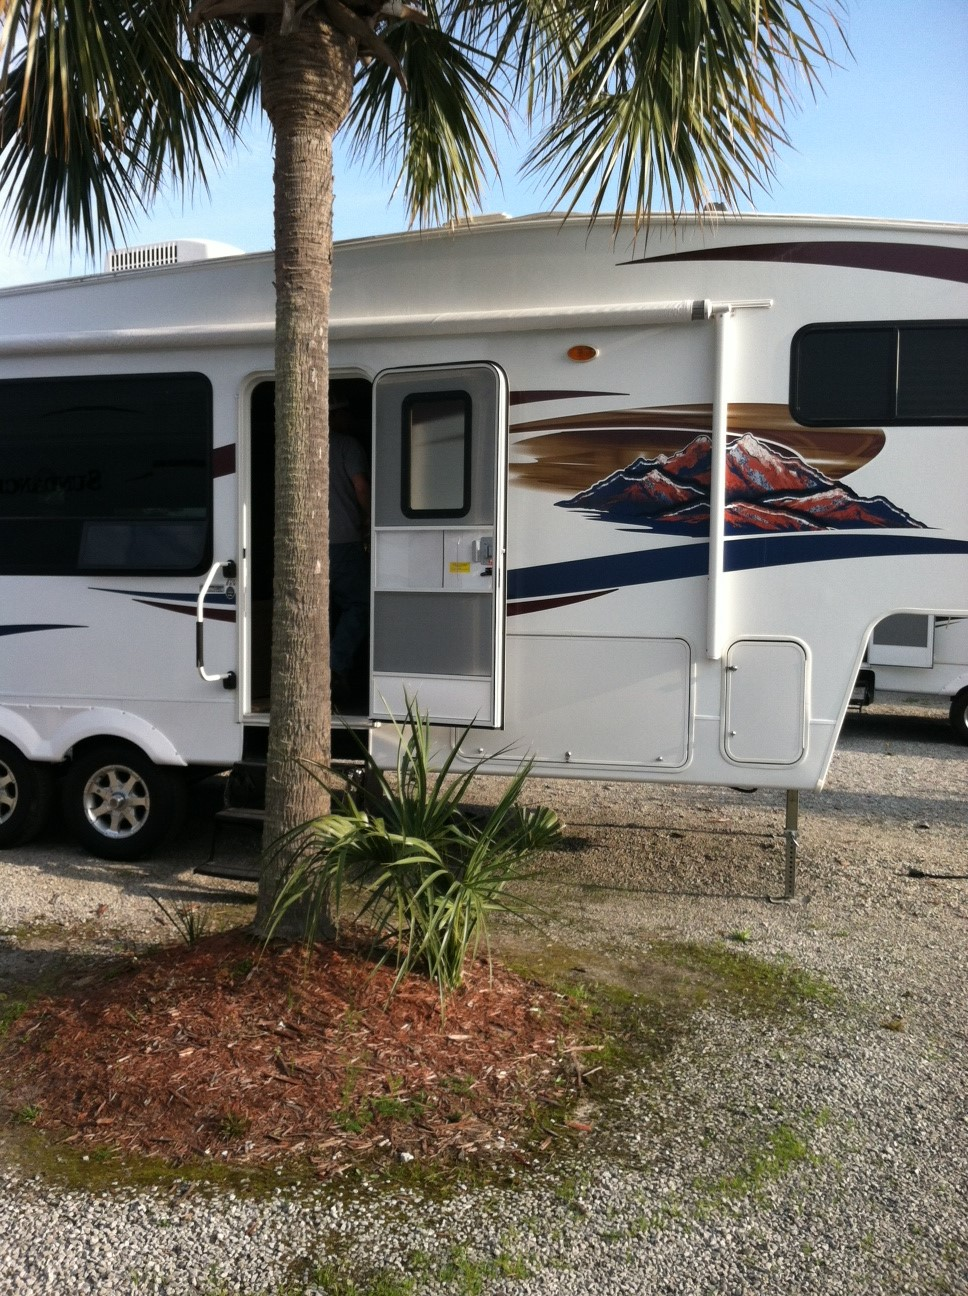 Click image for larger version  Name:RV ROOF AT PURCHASE.JPG Views:103 Size:459.8 KB ID:64291